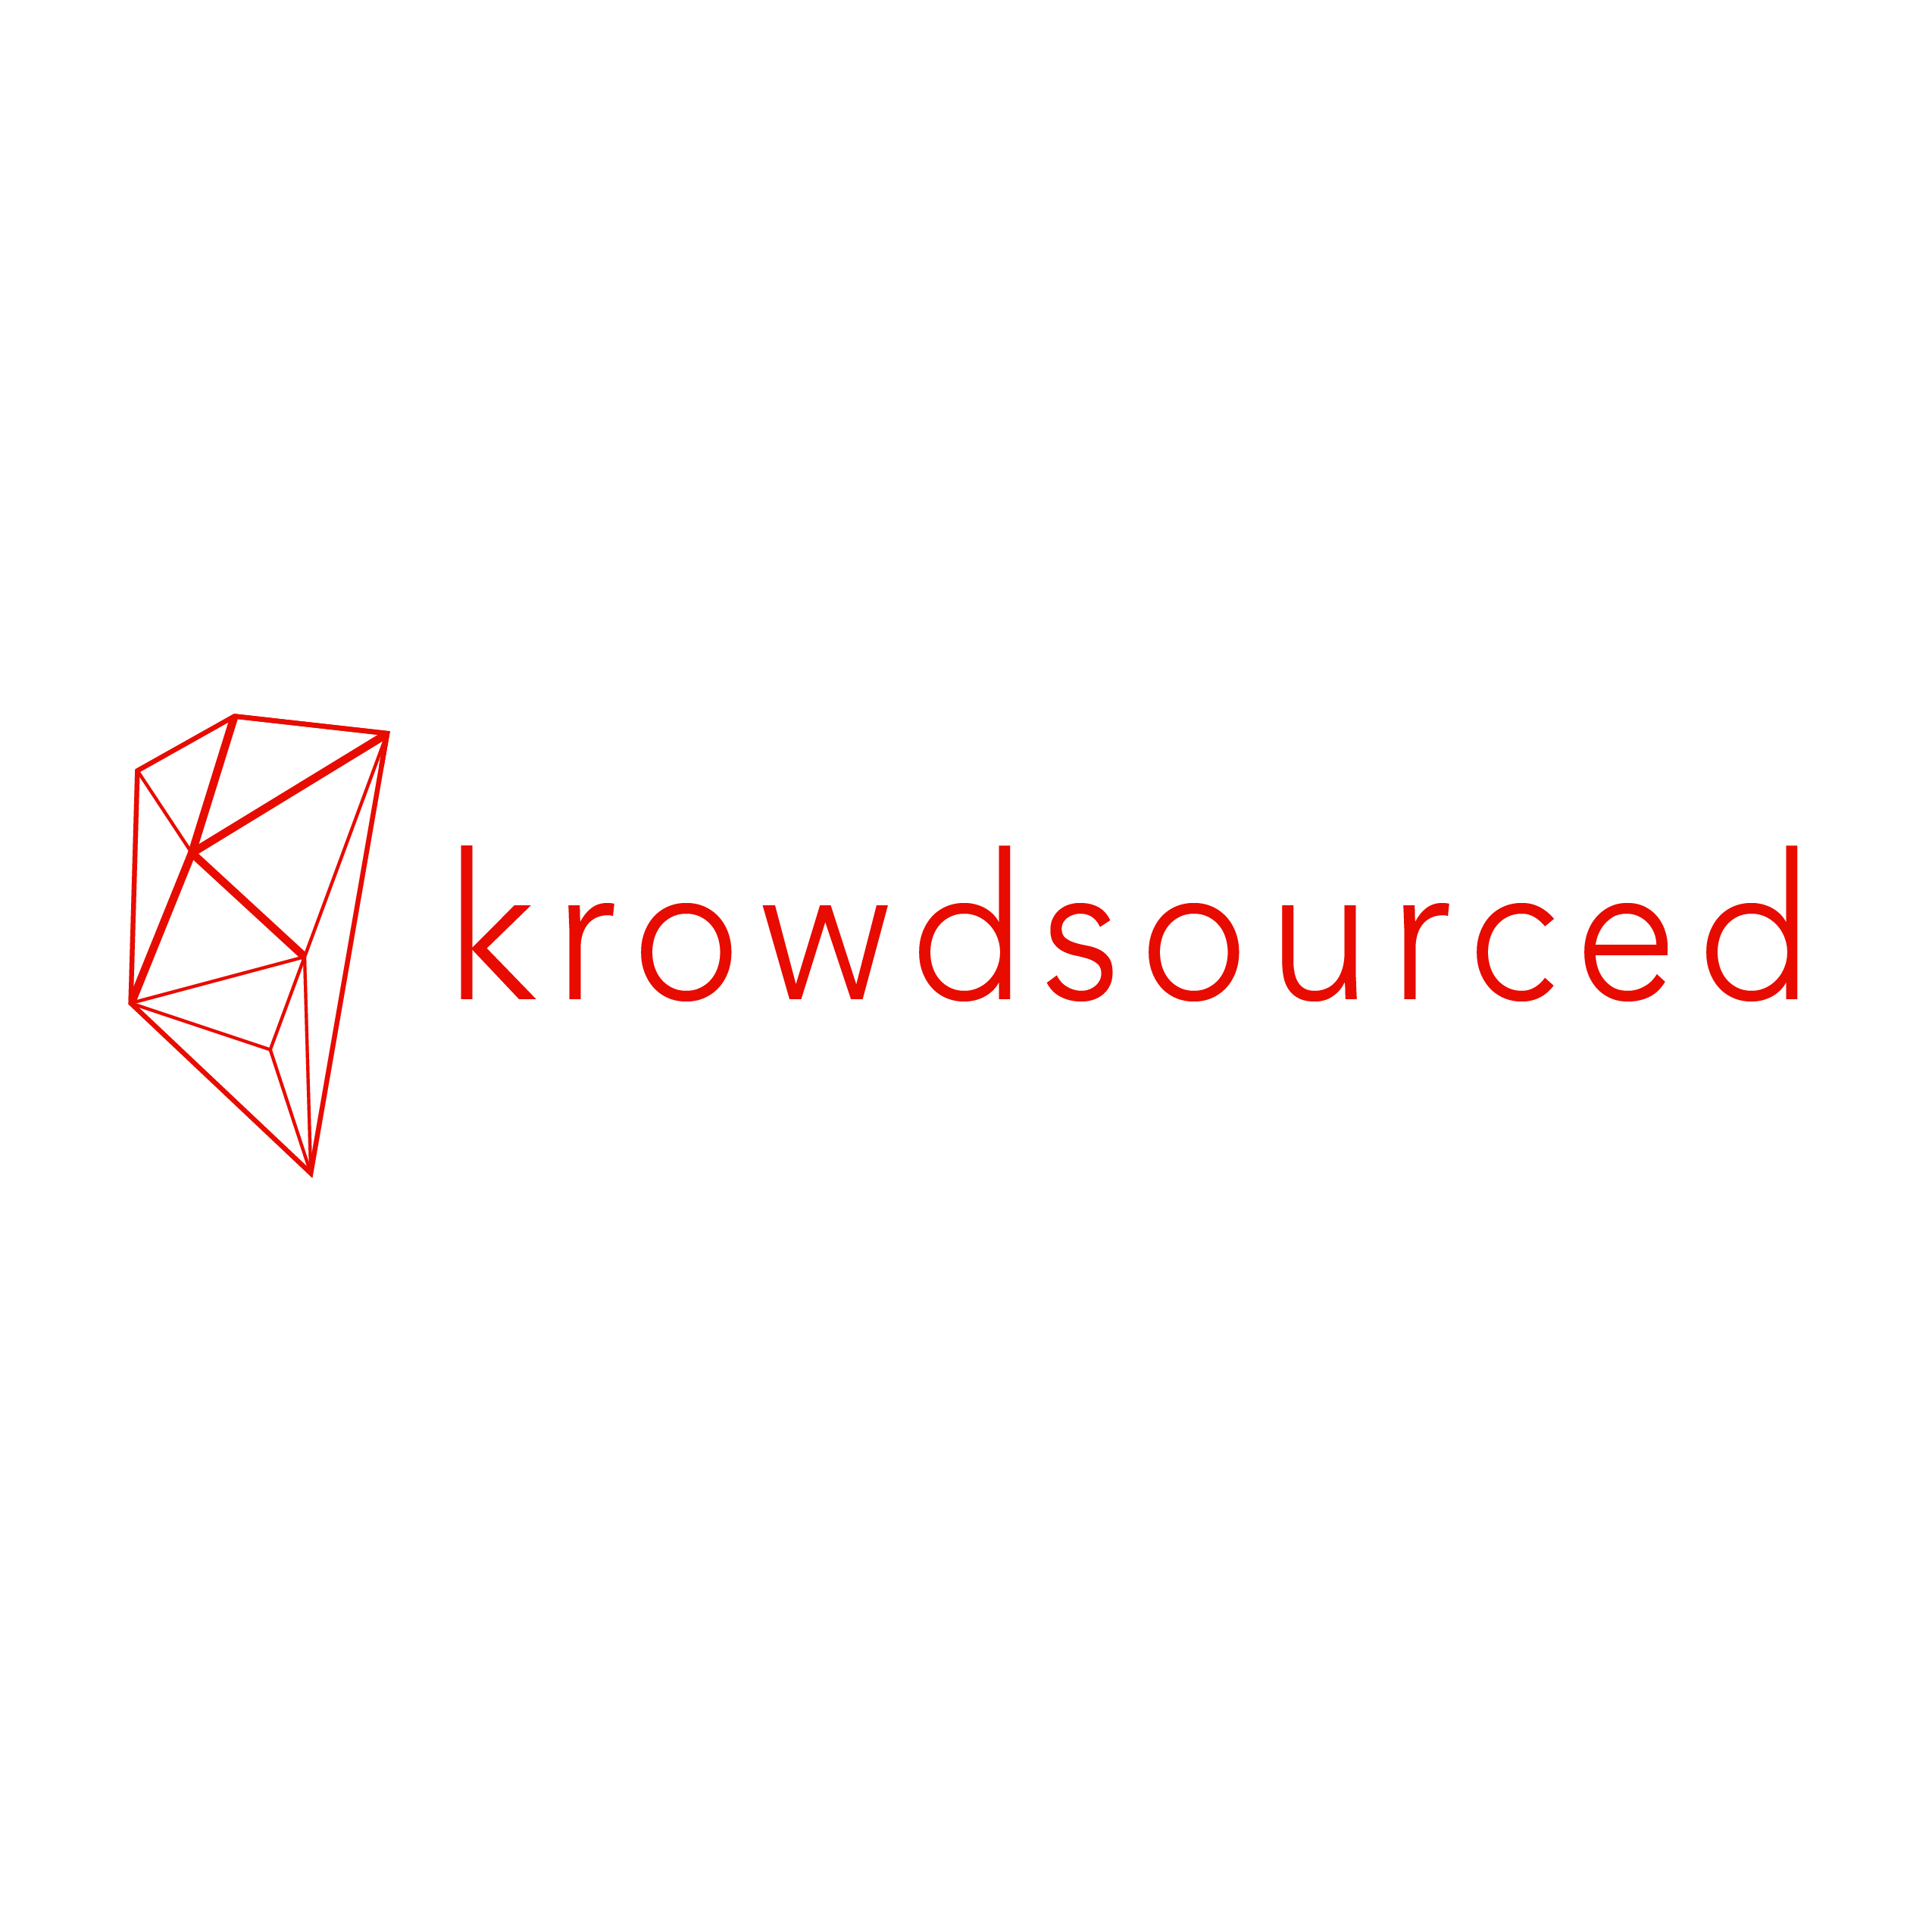 krowdsourced-logo-red-01.png